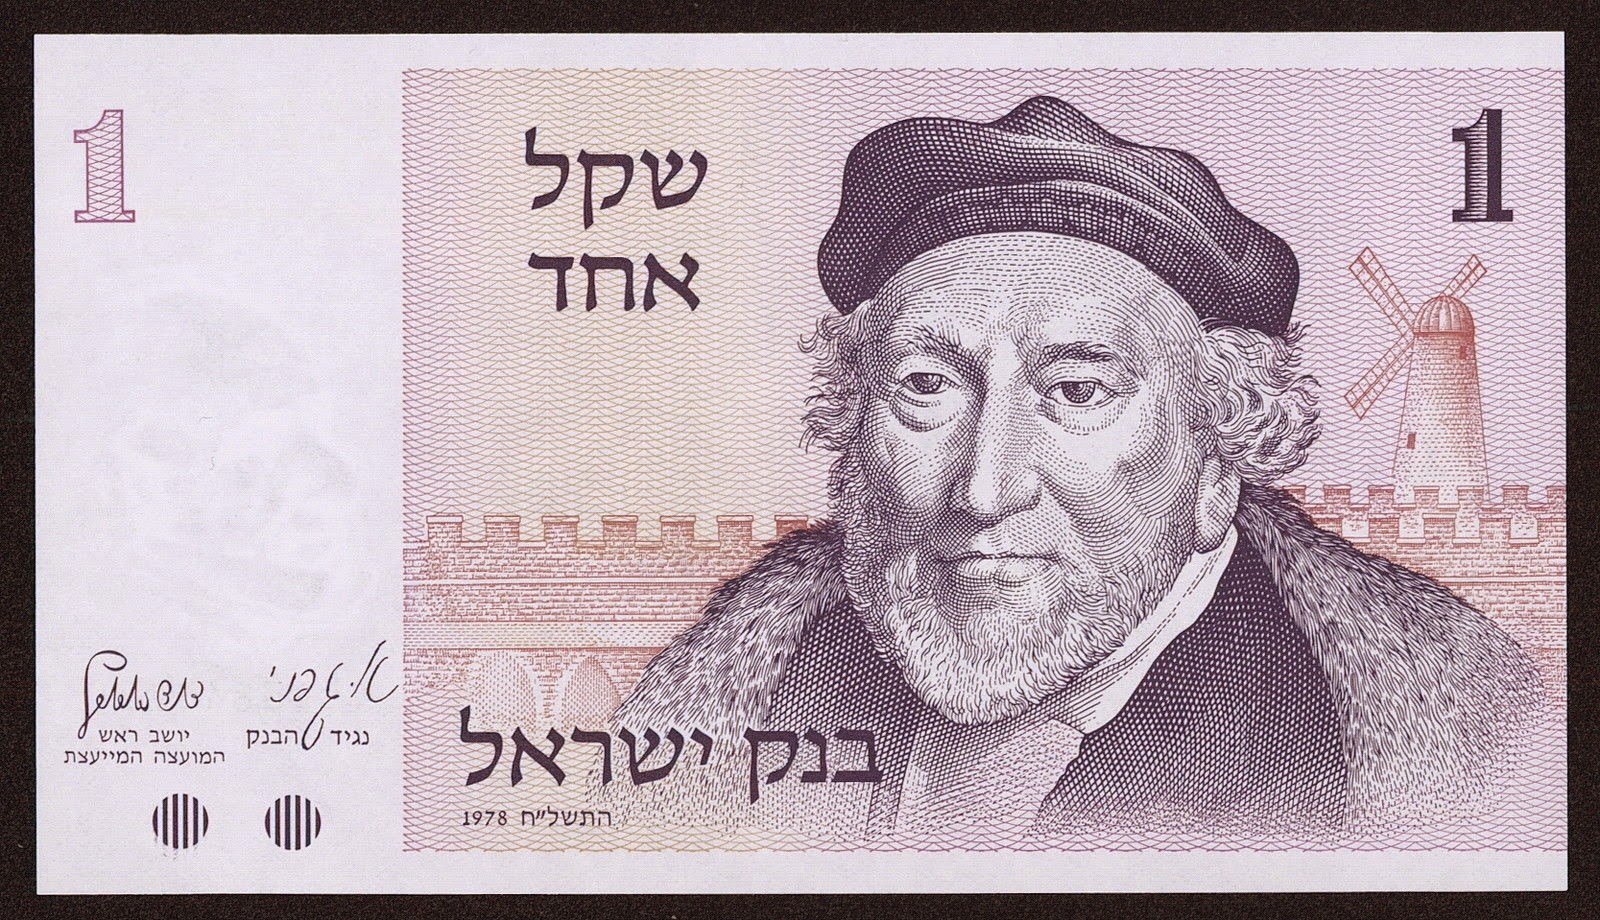 Israel banknotes 1 Sheqel note 1978 Moses Montefiore